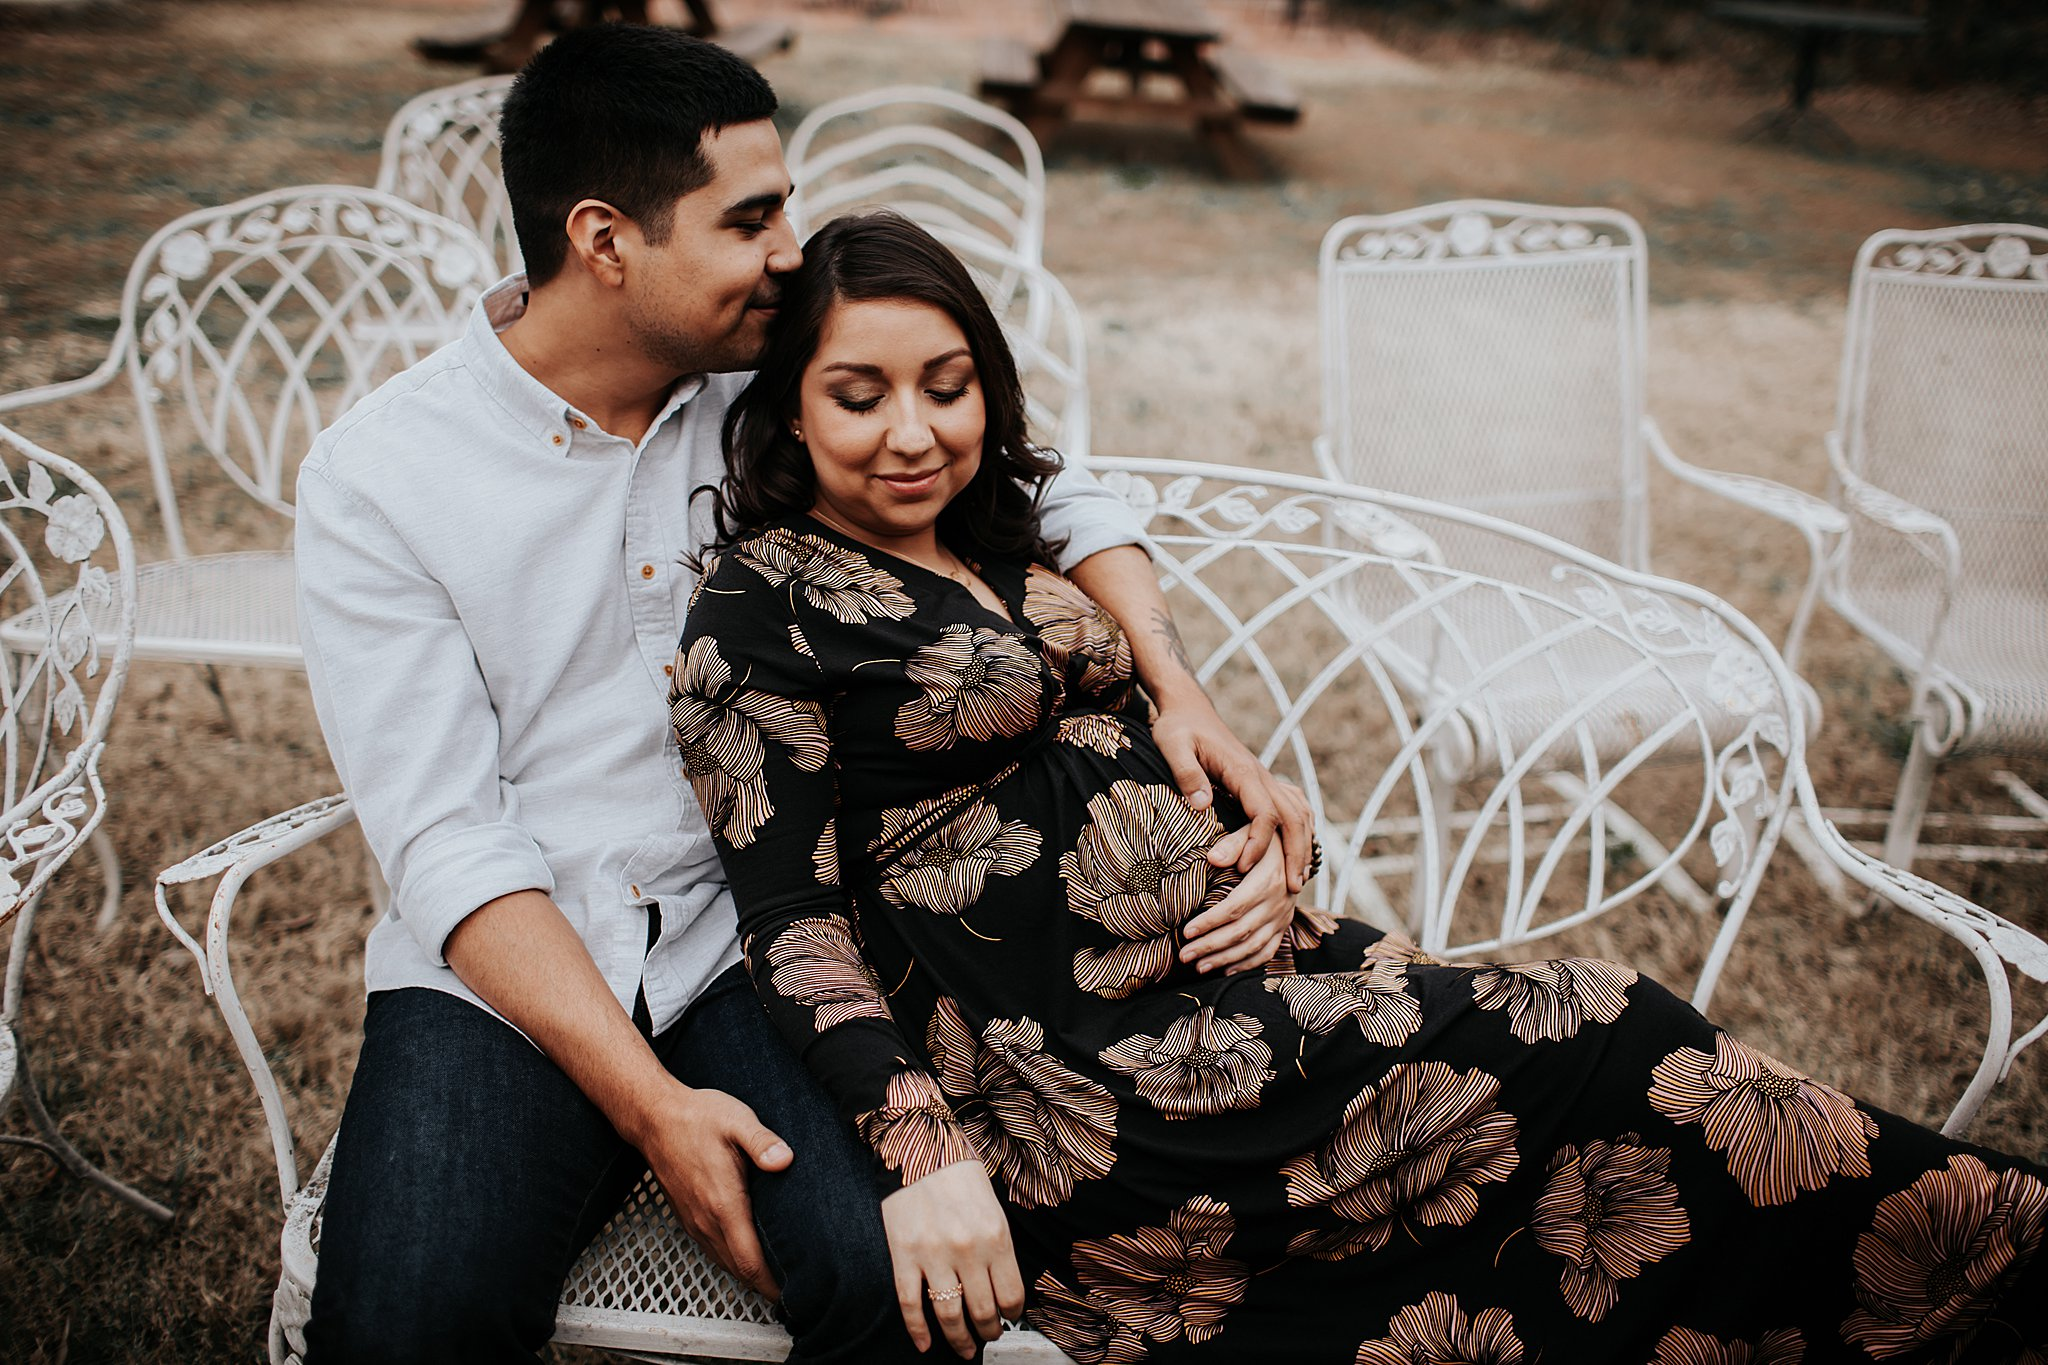 Julia-San-Antonio-Maternity-Photographer-87_WEB.jpg